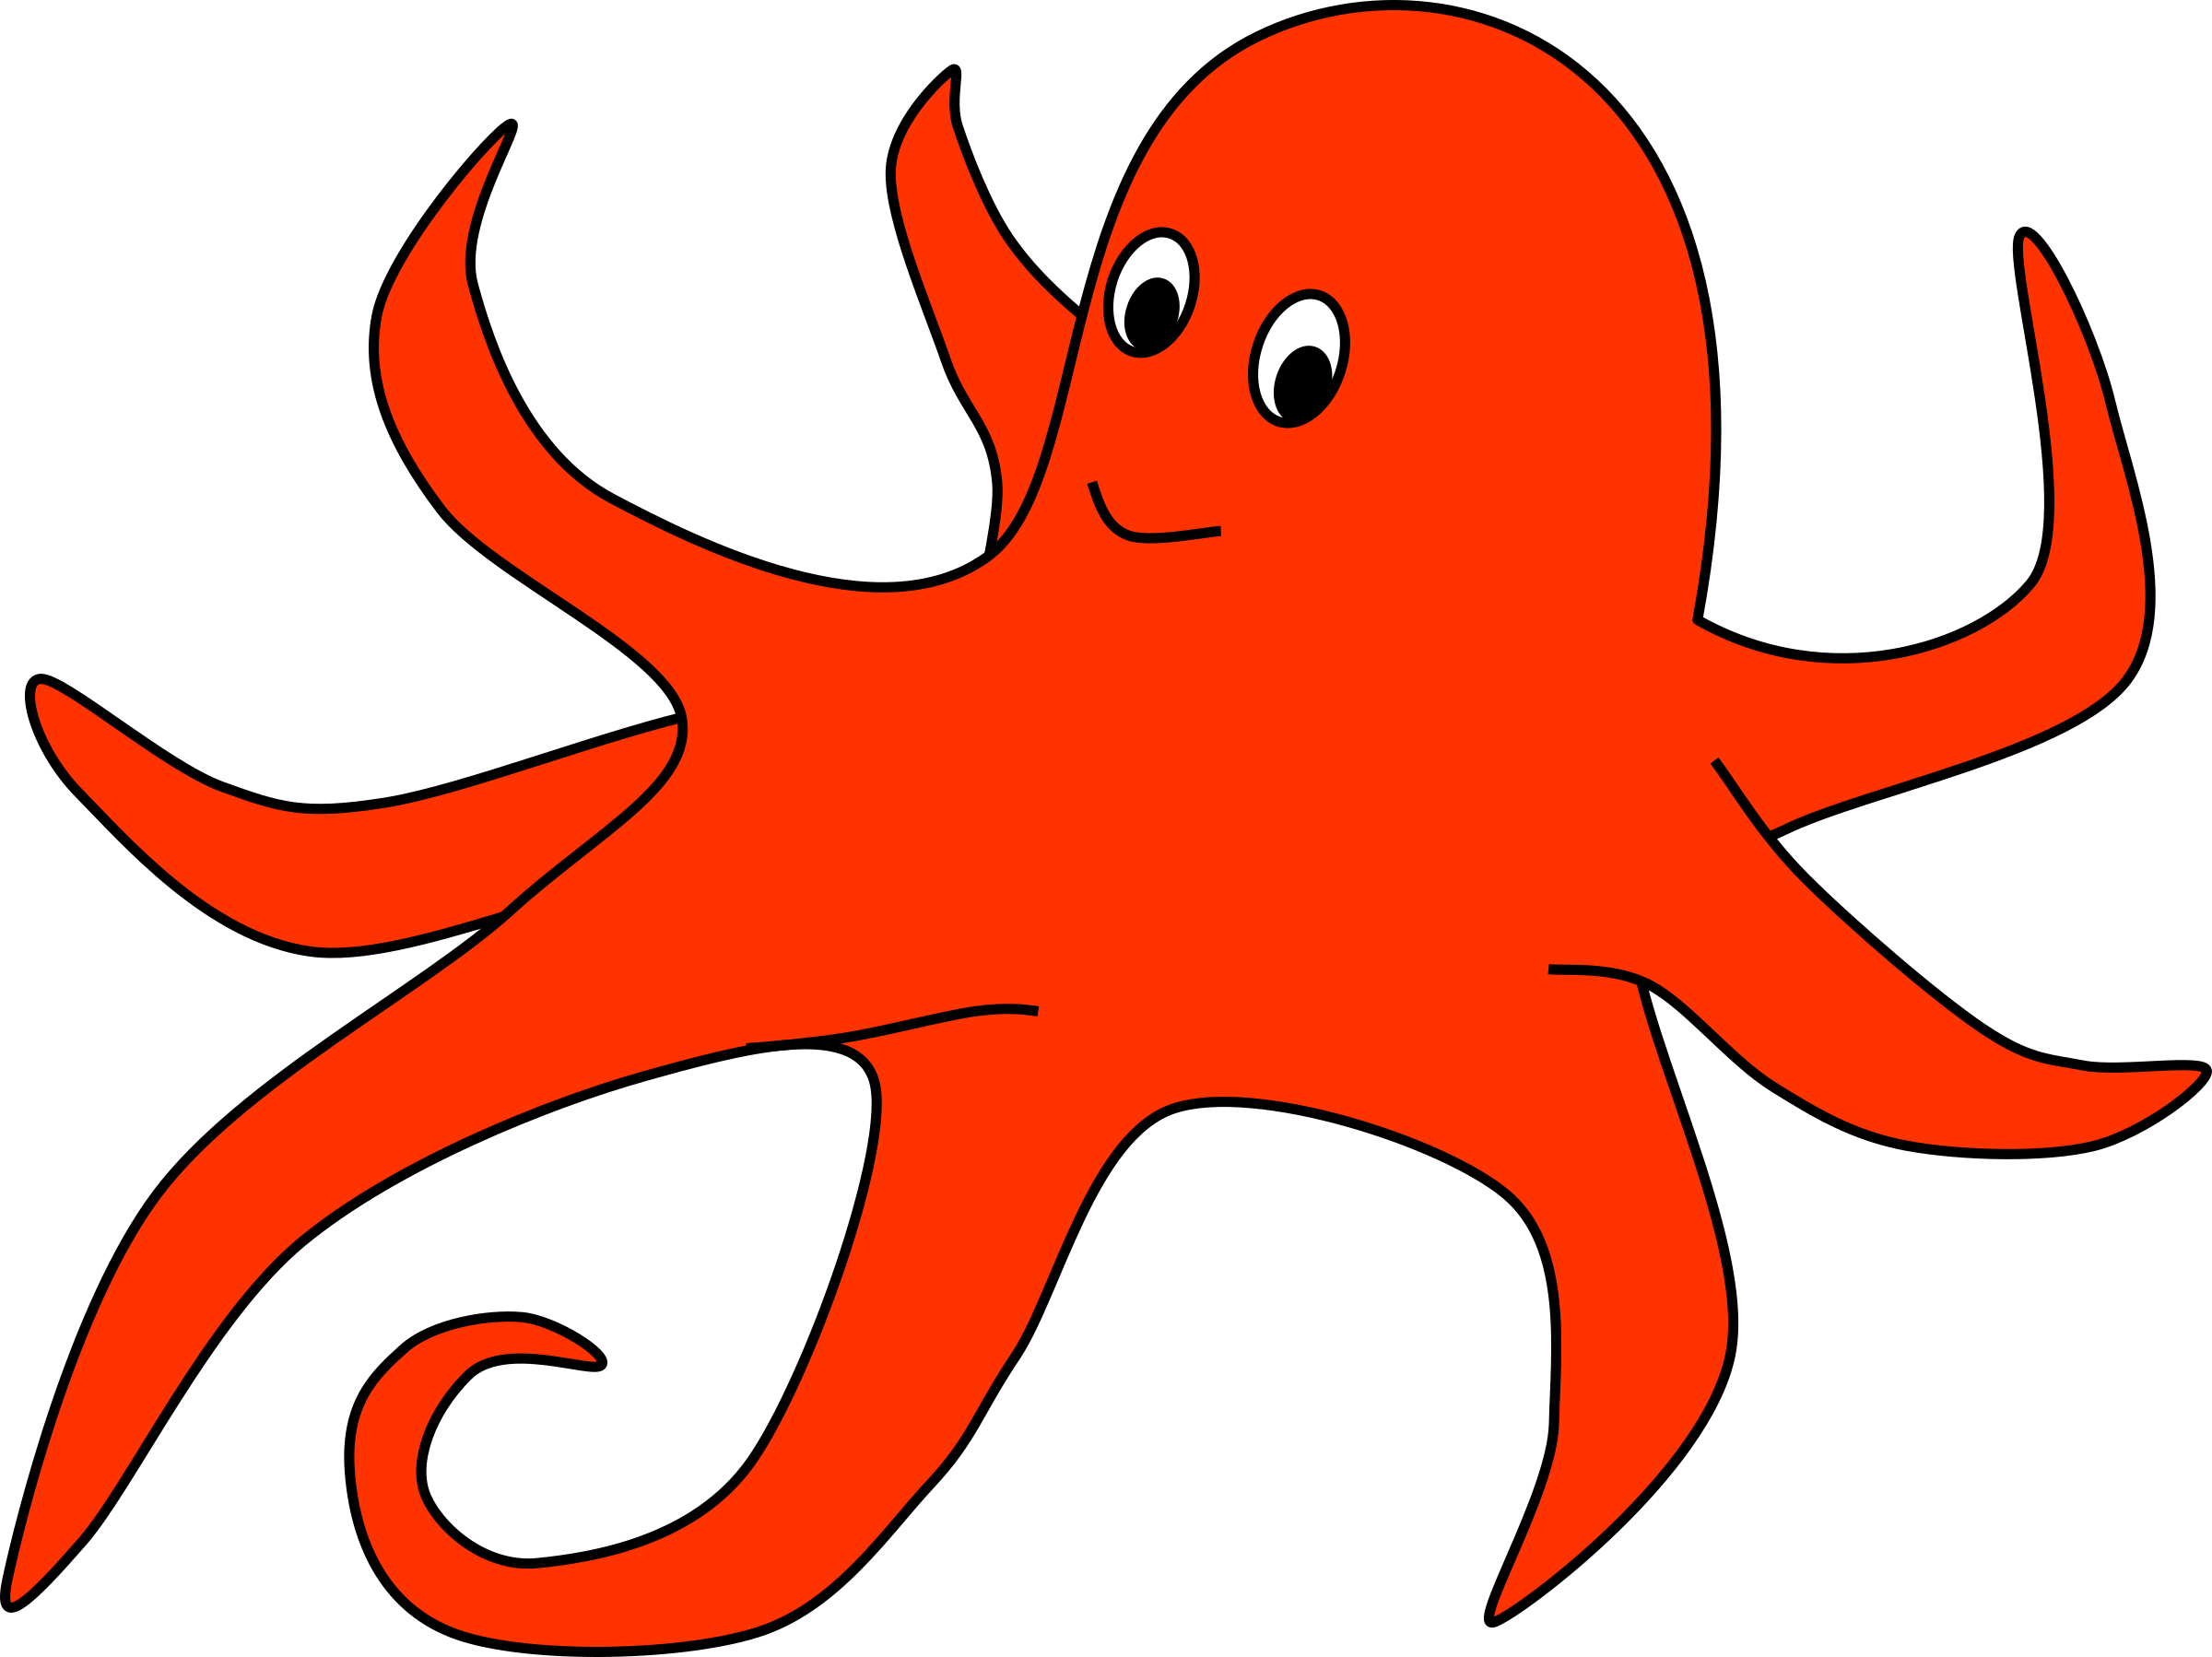 Oval of Orange Octopus by barnheartowl